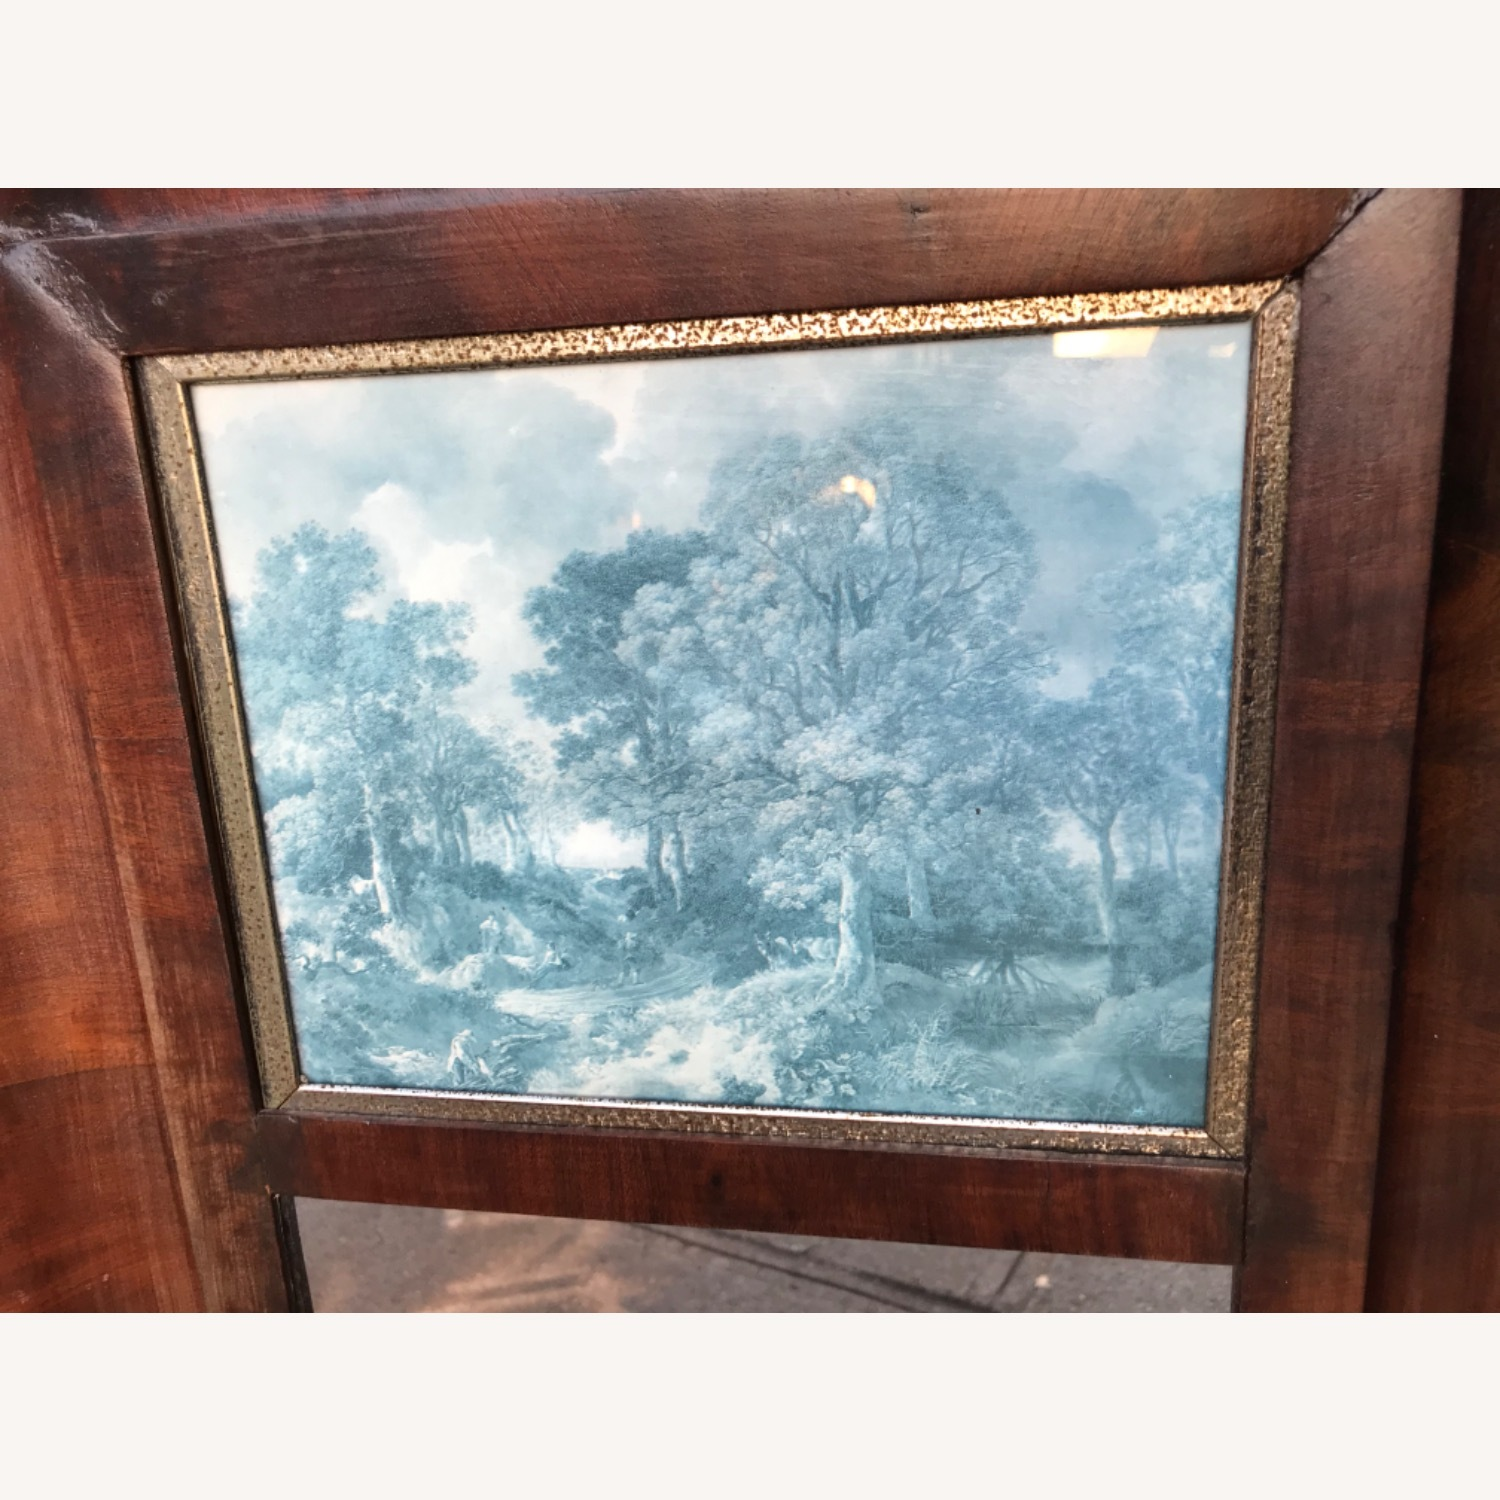 Antique 1900s Mahogany Framed Mirror w/ Picture - image-8